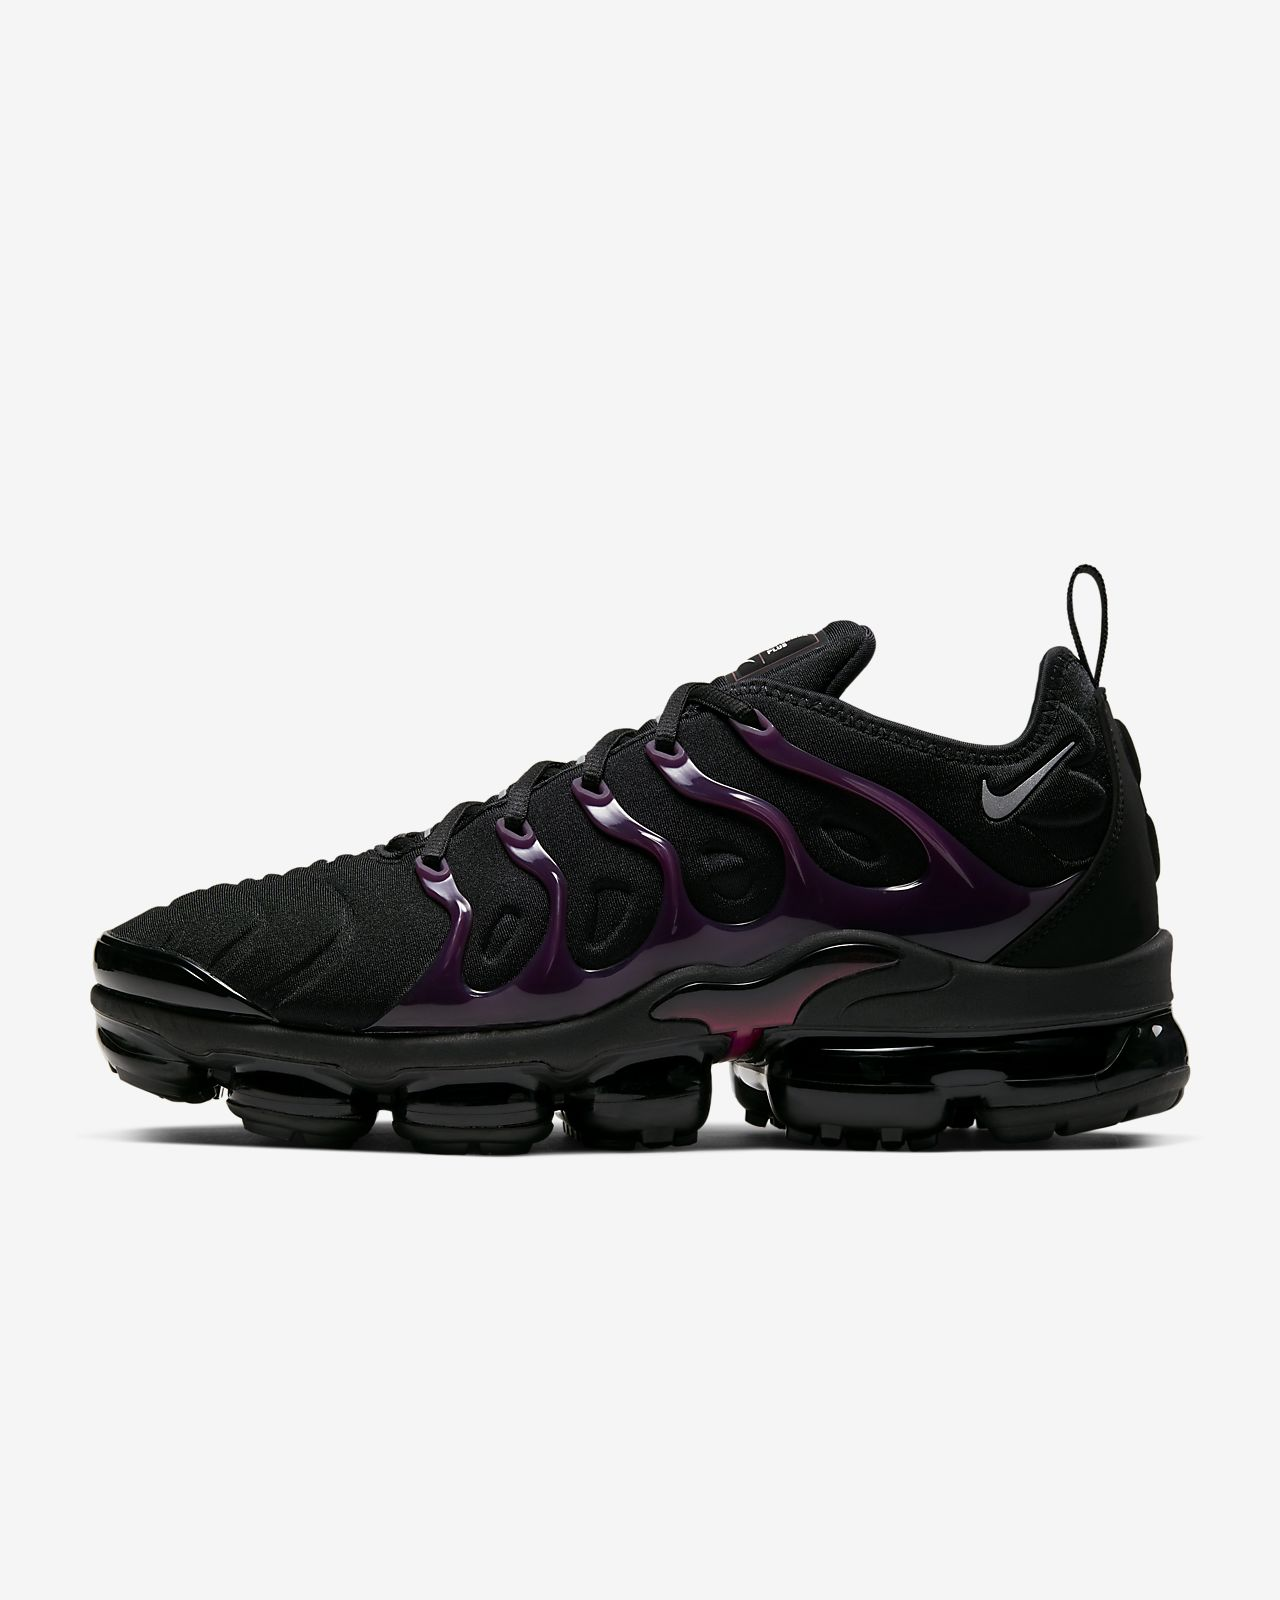 Nike Air VaporMax Plus Men's Shoe